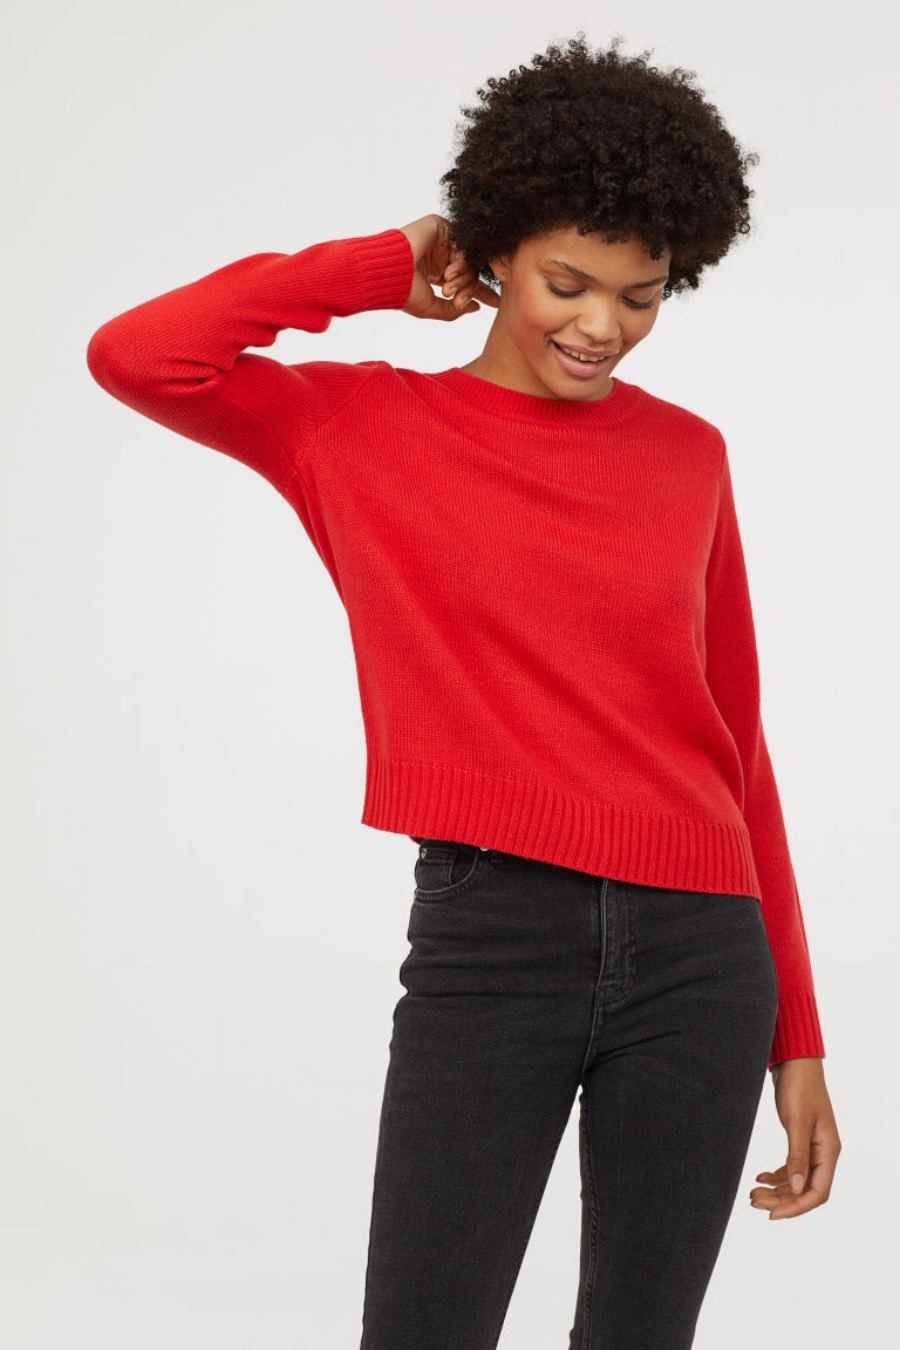 SS19 Trends- Bold Hues Red Sweater